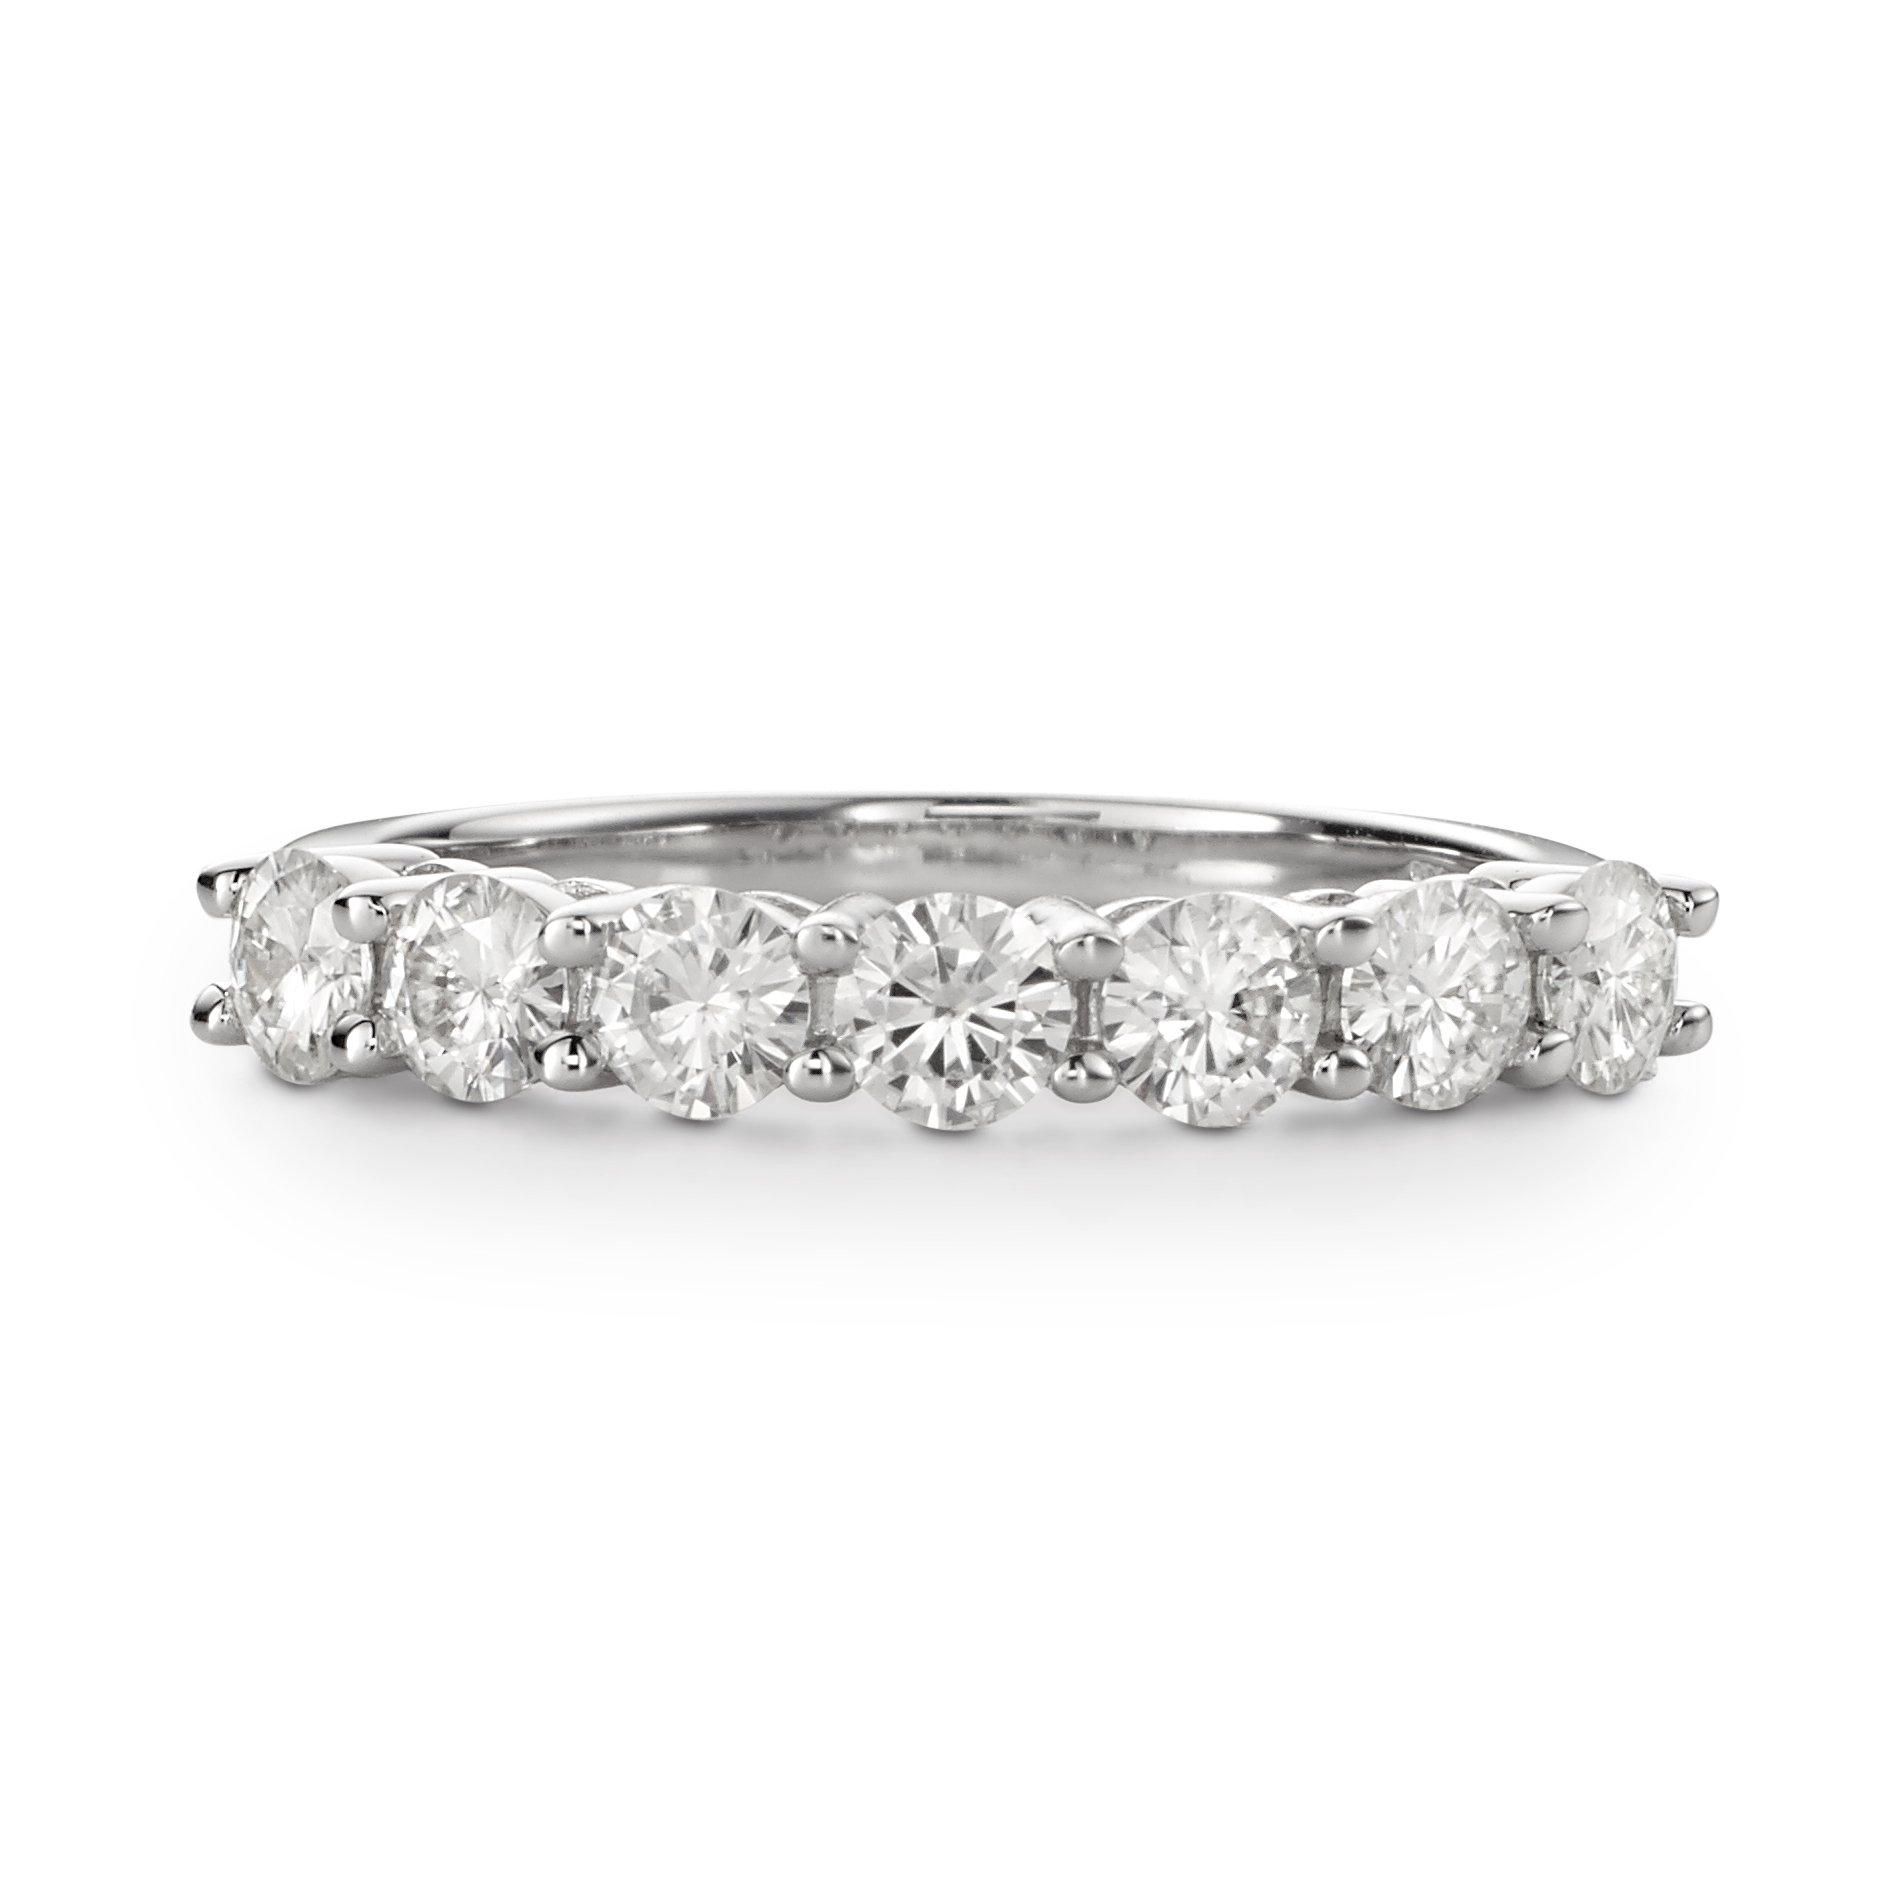 Forever Brilliant Round 3.5mm Moissanite Wedding Band - size 8, 1.12cttw DEW by Charles & Colvard